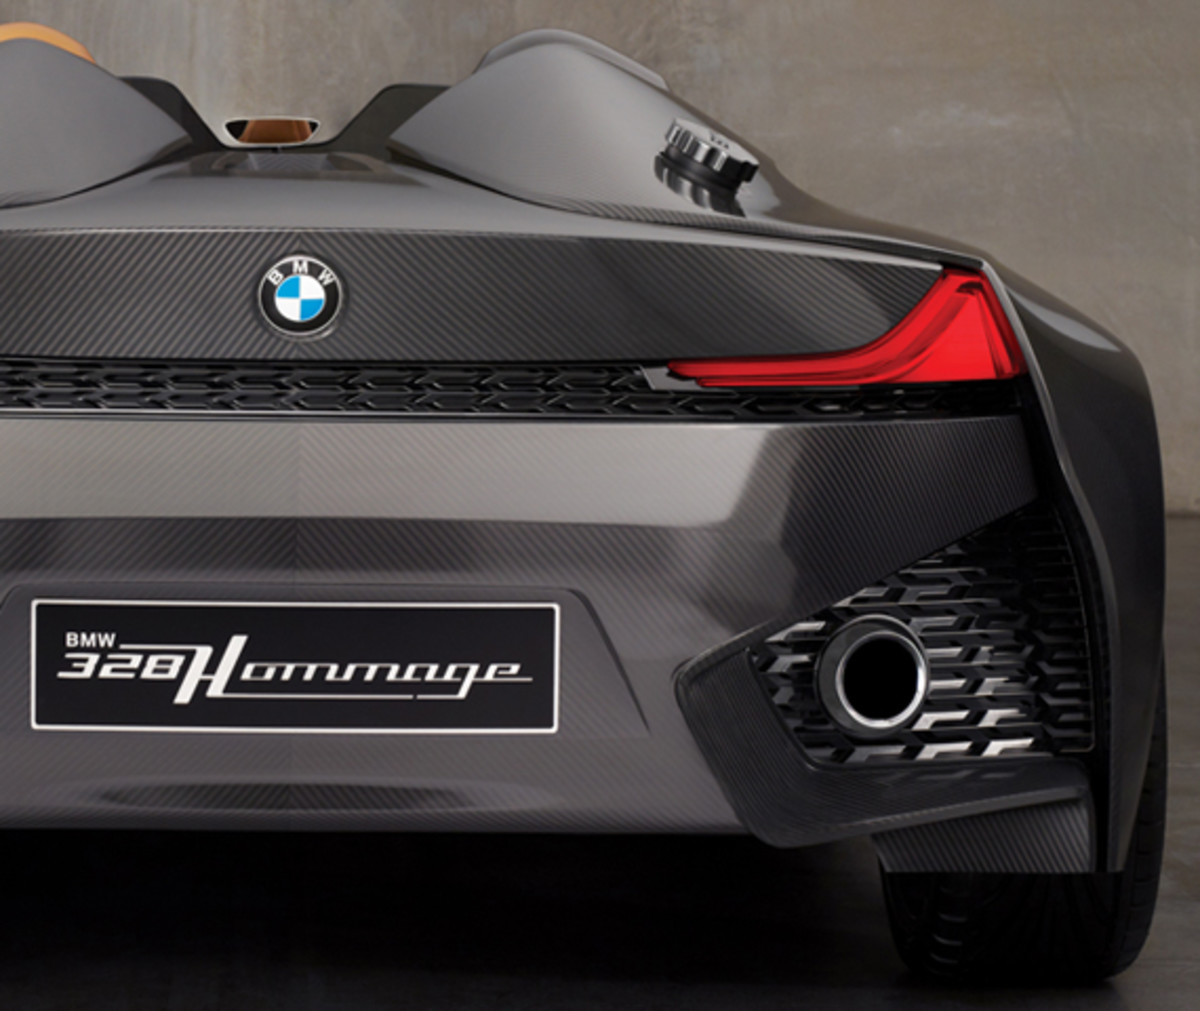 bmw-328-hommage-a-08